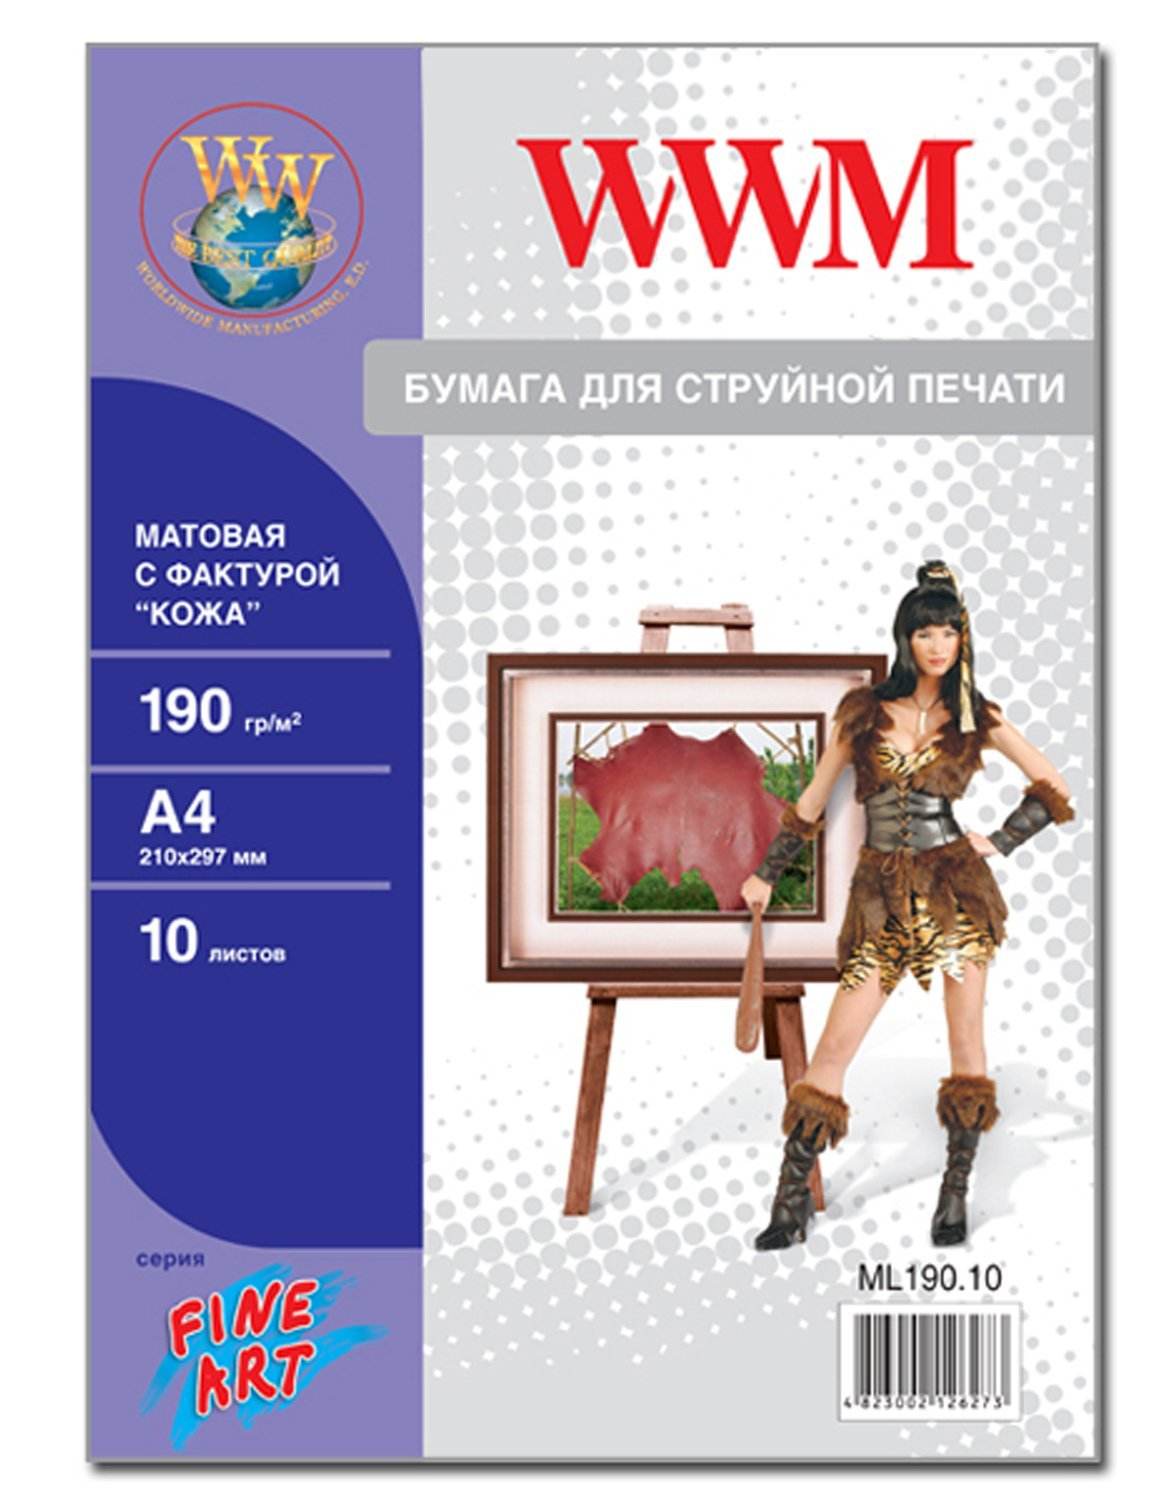 """Photo Paper Matte WWM """"SKIN"""", 11,7 x 8,3 Inches, 190gsm, 10 Sheets (ML190.10); High Quality, For Any Desktop Inkjet Printers, Excellent White Inkjet Printer Photo Paper for Printing Color Images, Gloss Coated, Pack of 10, 190gsm, Whiteness 96%, Brightness 108% on 457nm, Size 11,7x8,3 Borderless."""